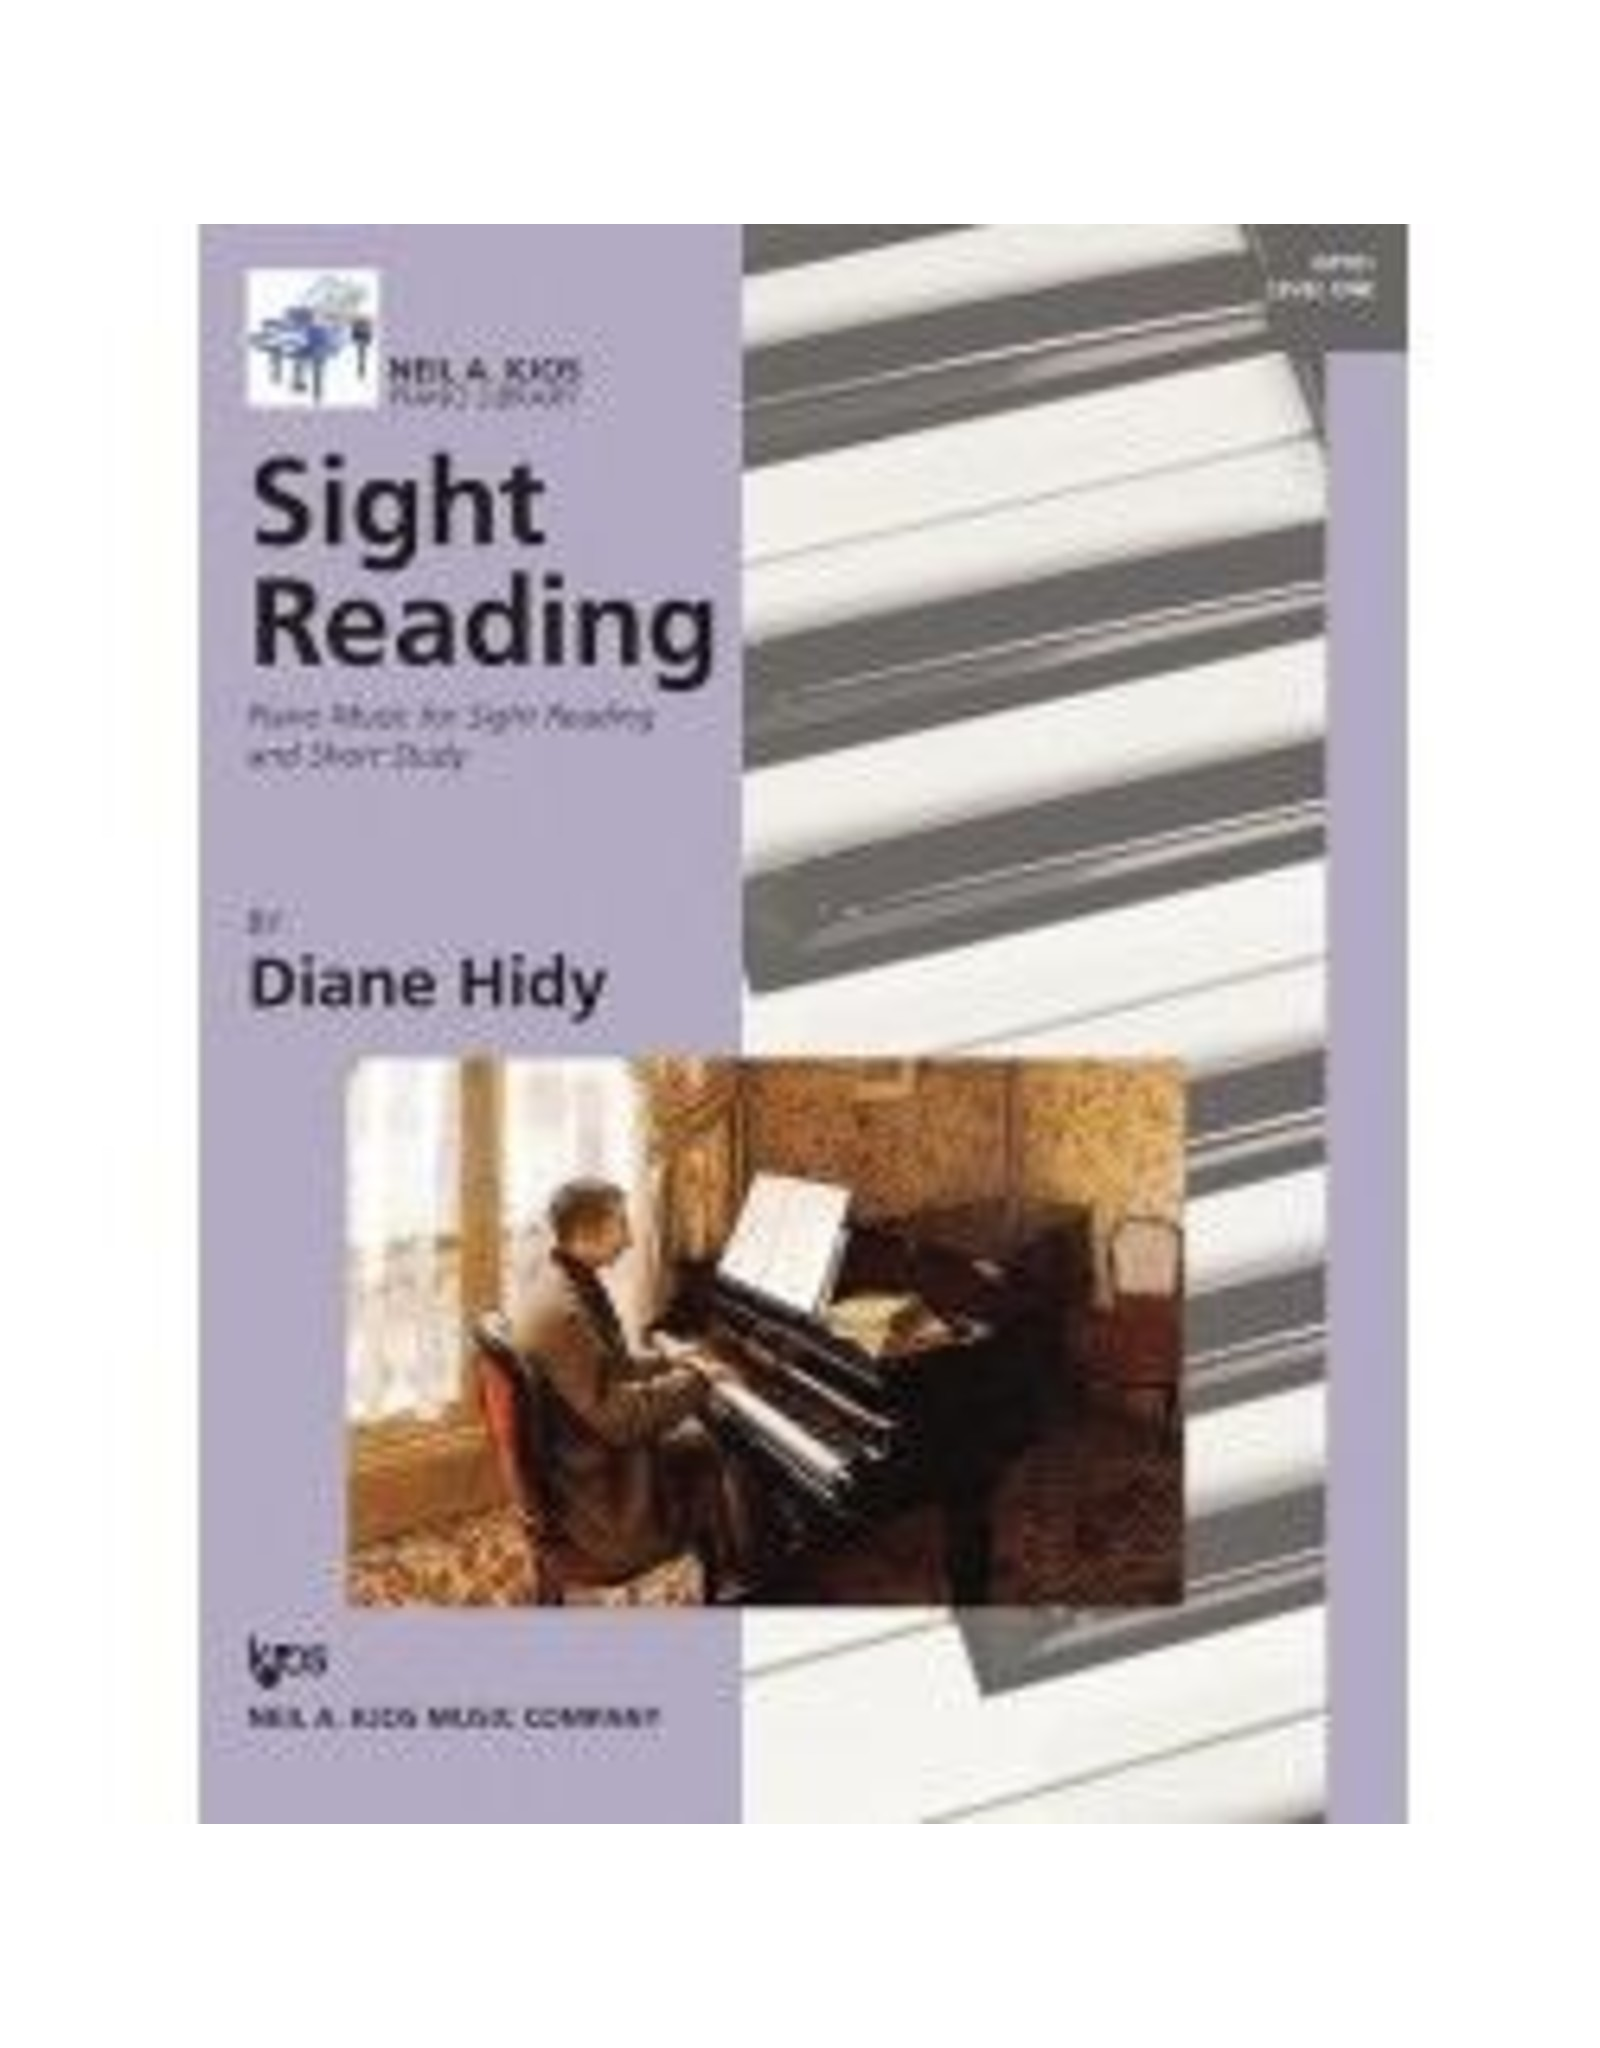 Kjos Sight Reading by Diane Hidy Level 1